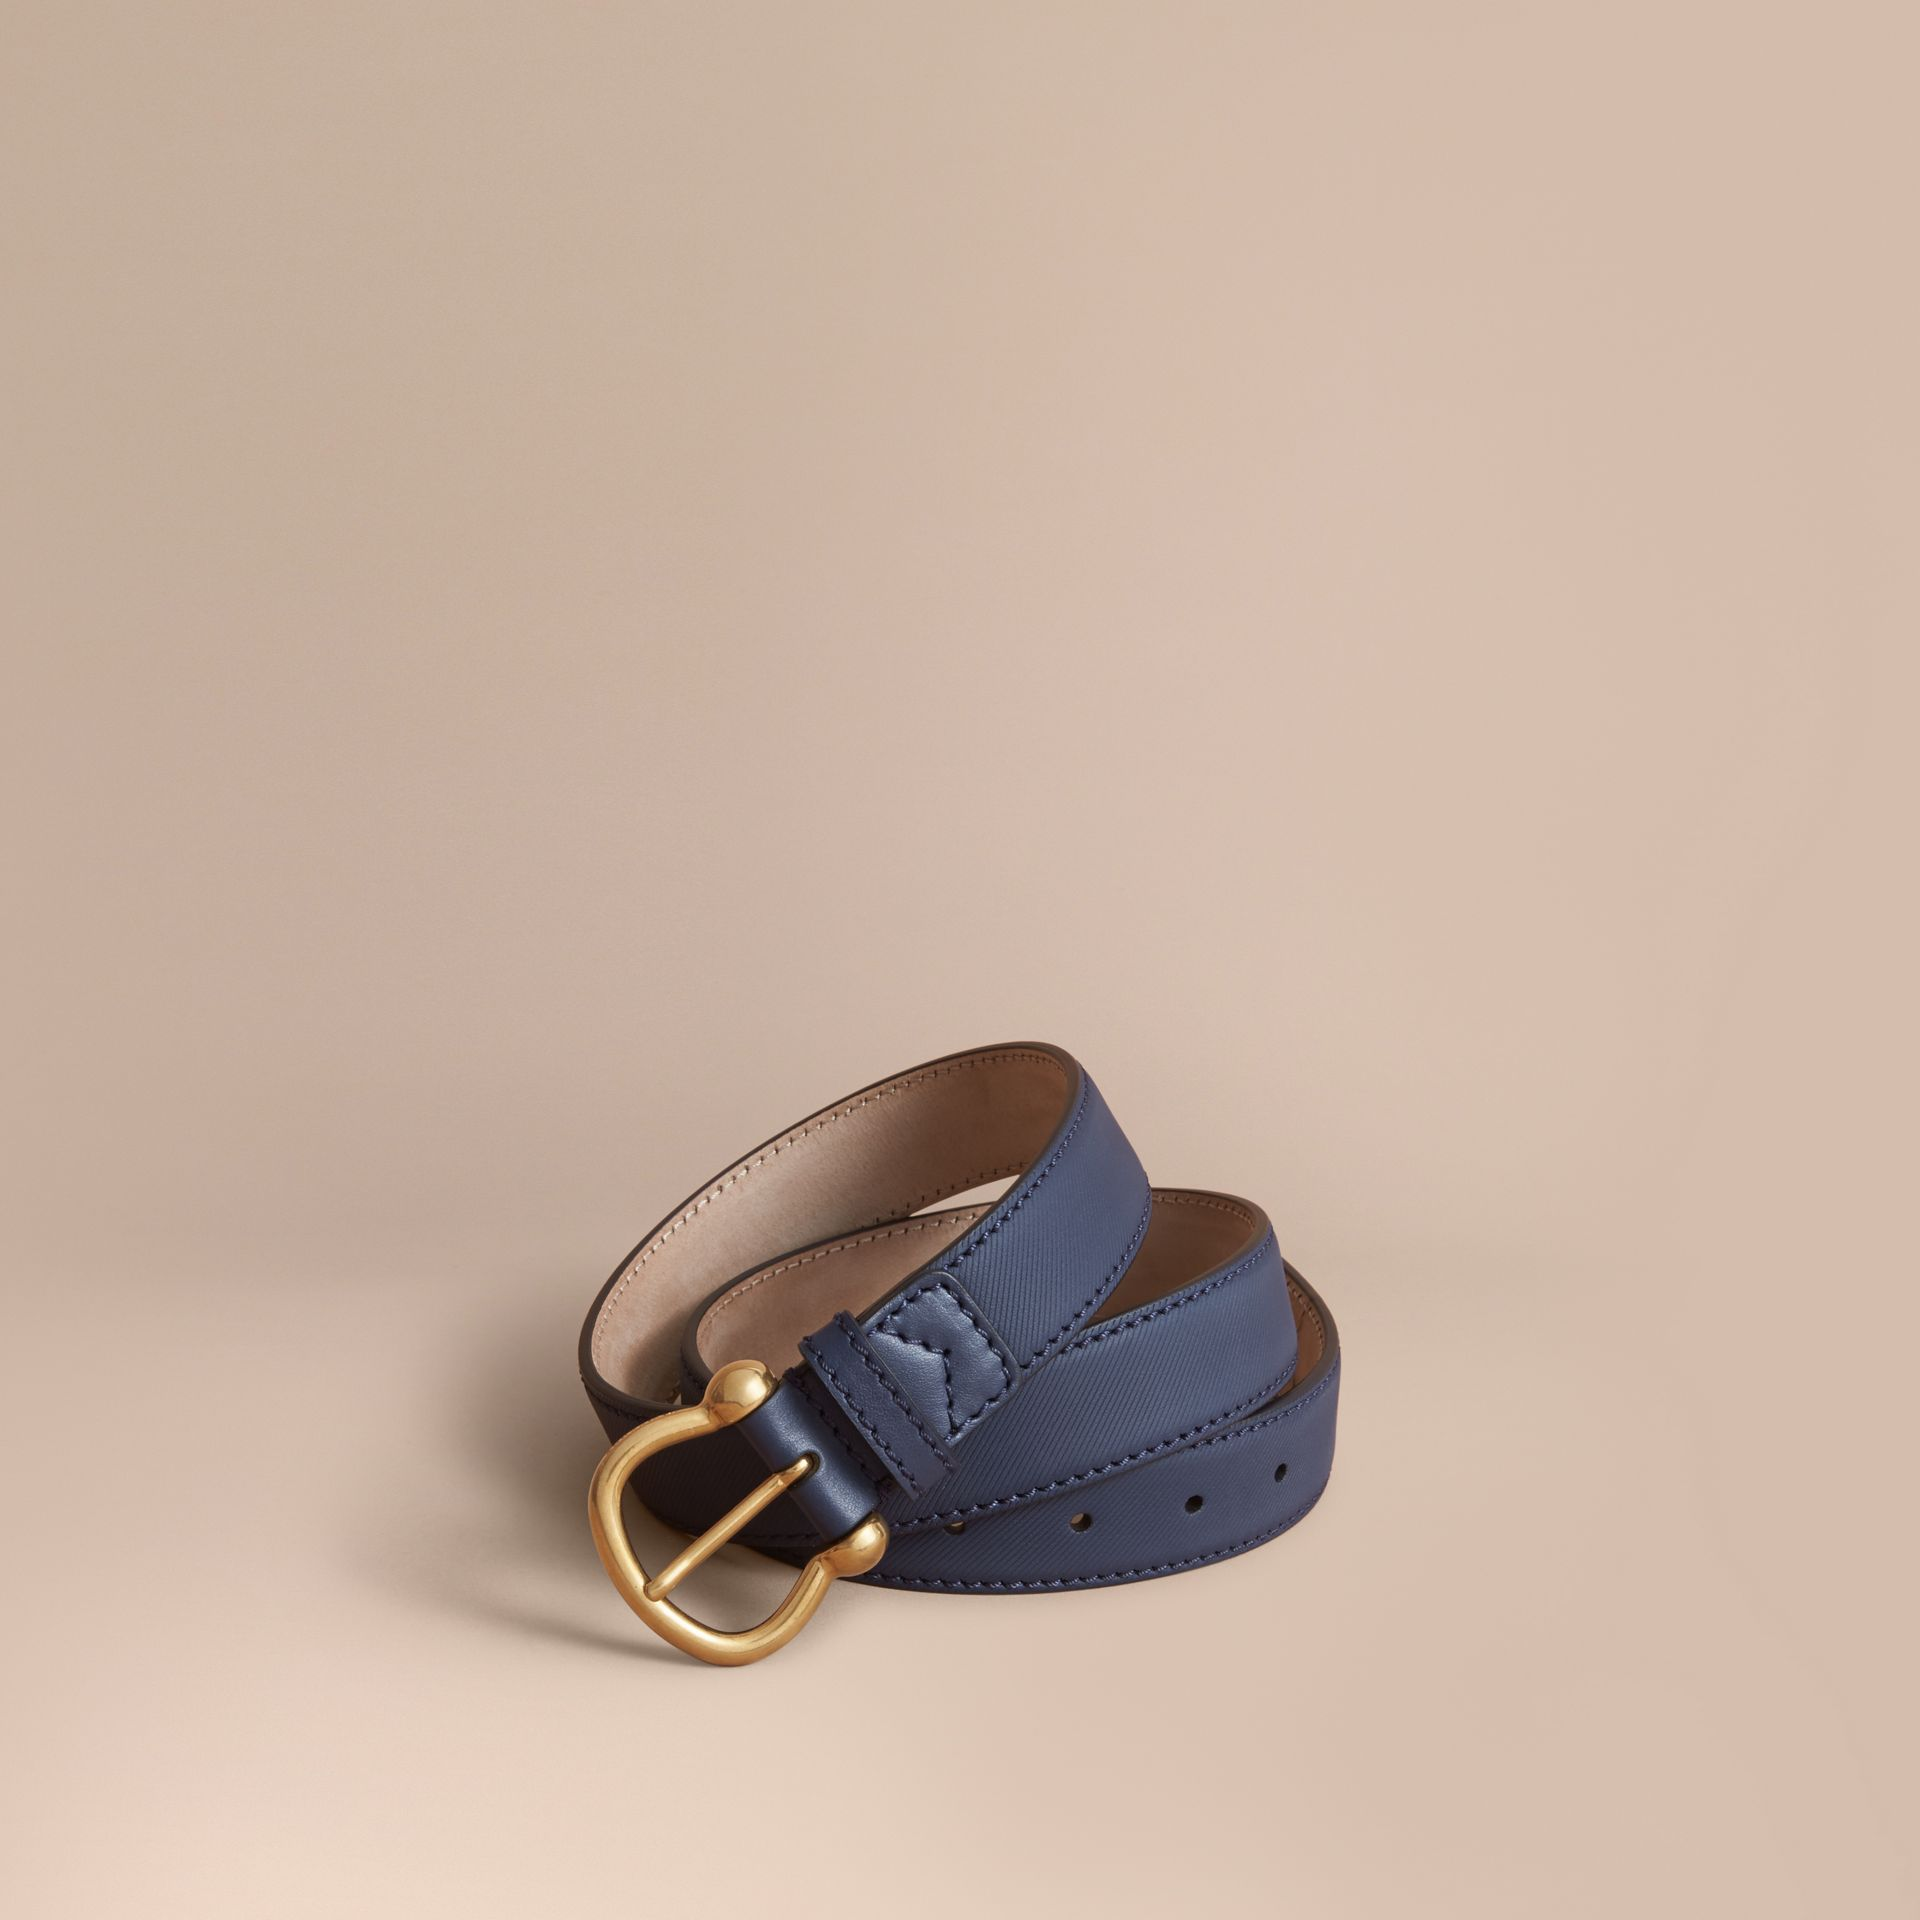 Trench Leather Belt in Ink Blue - Women | Burberry - gallery image 1